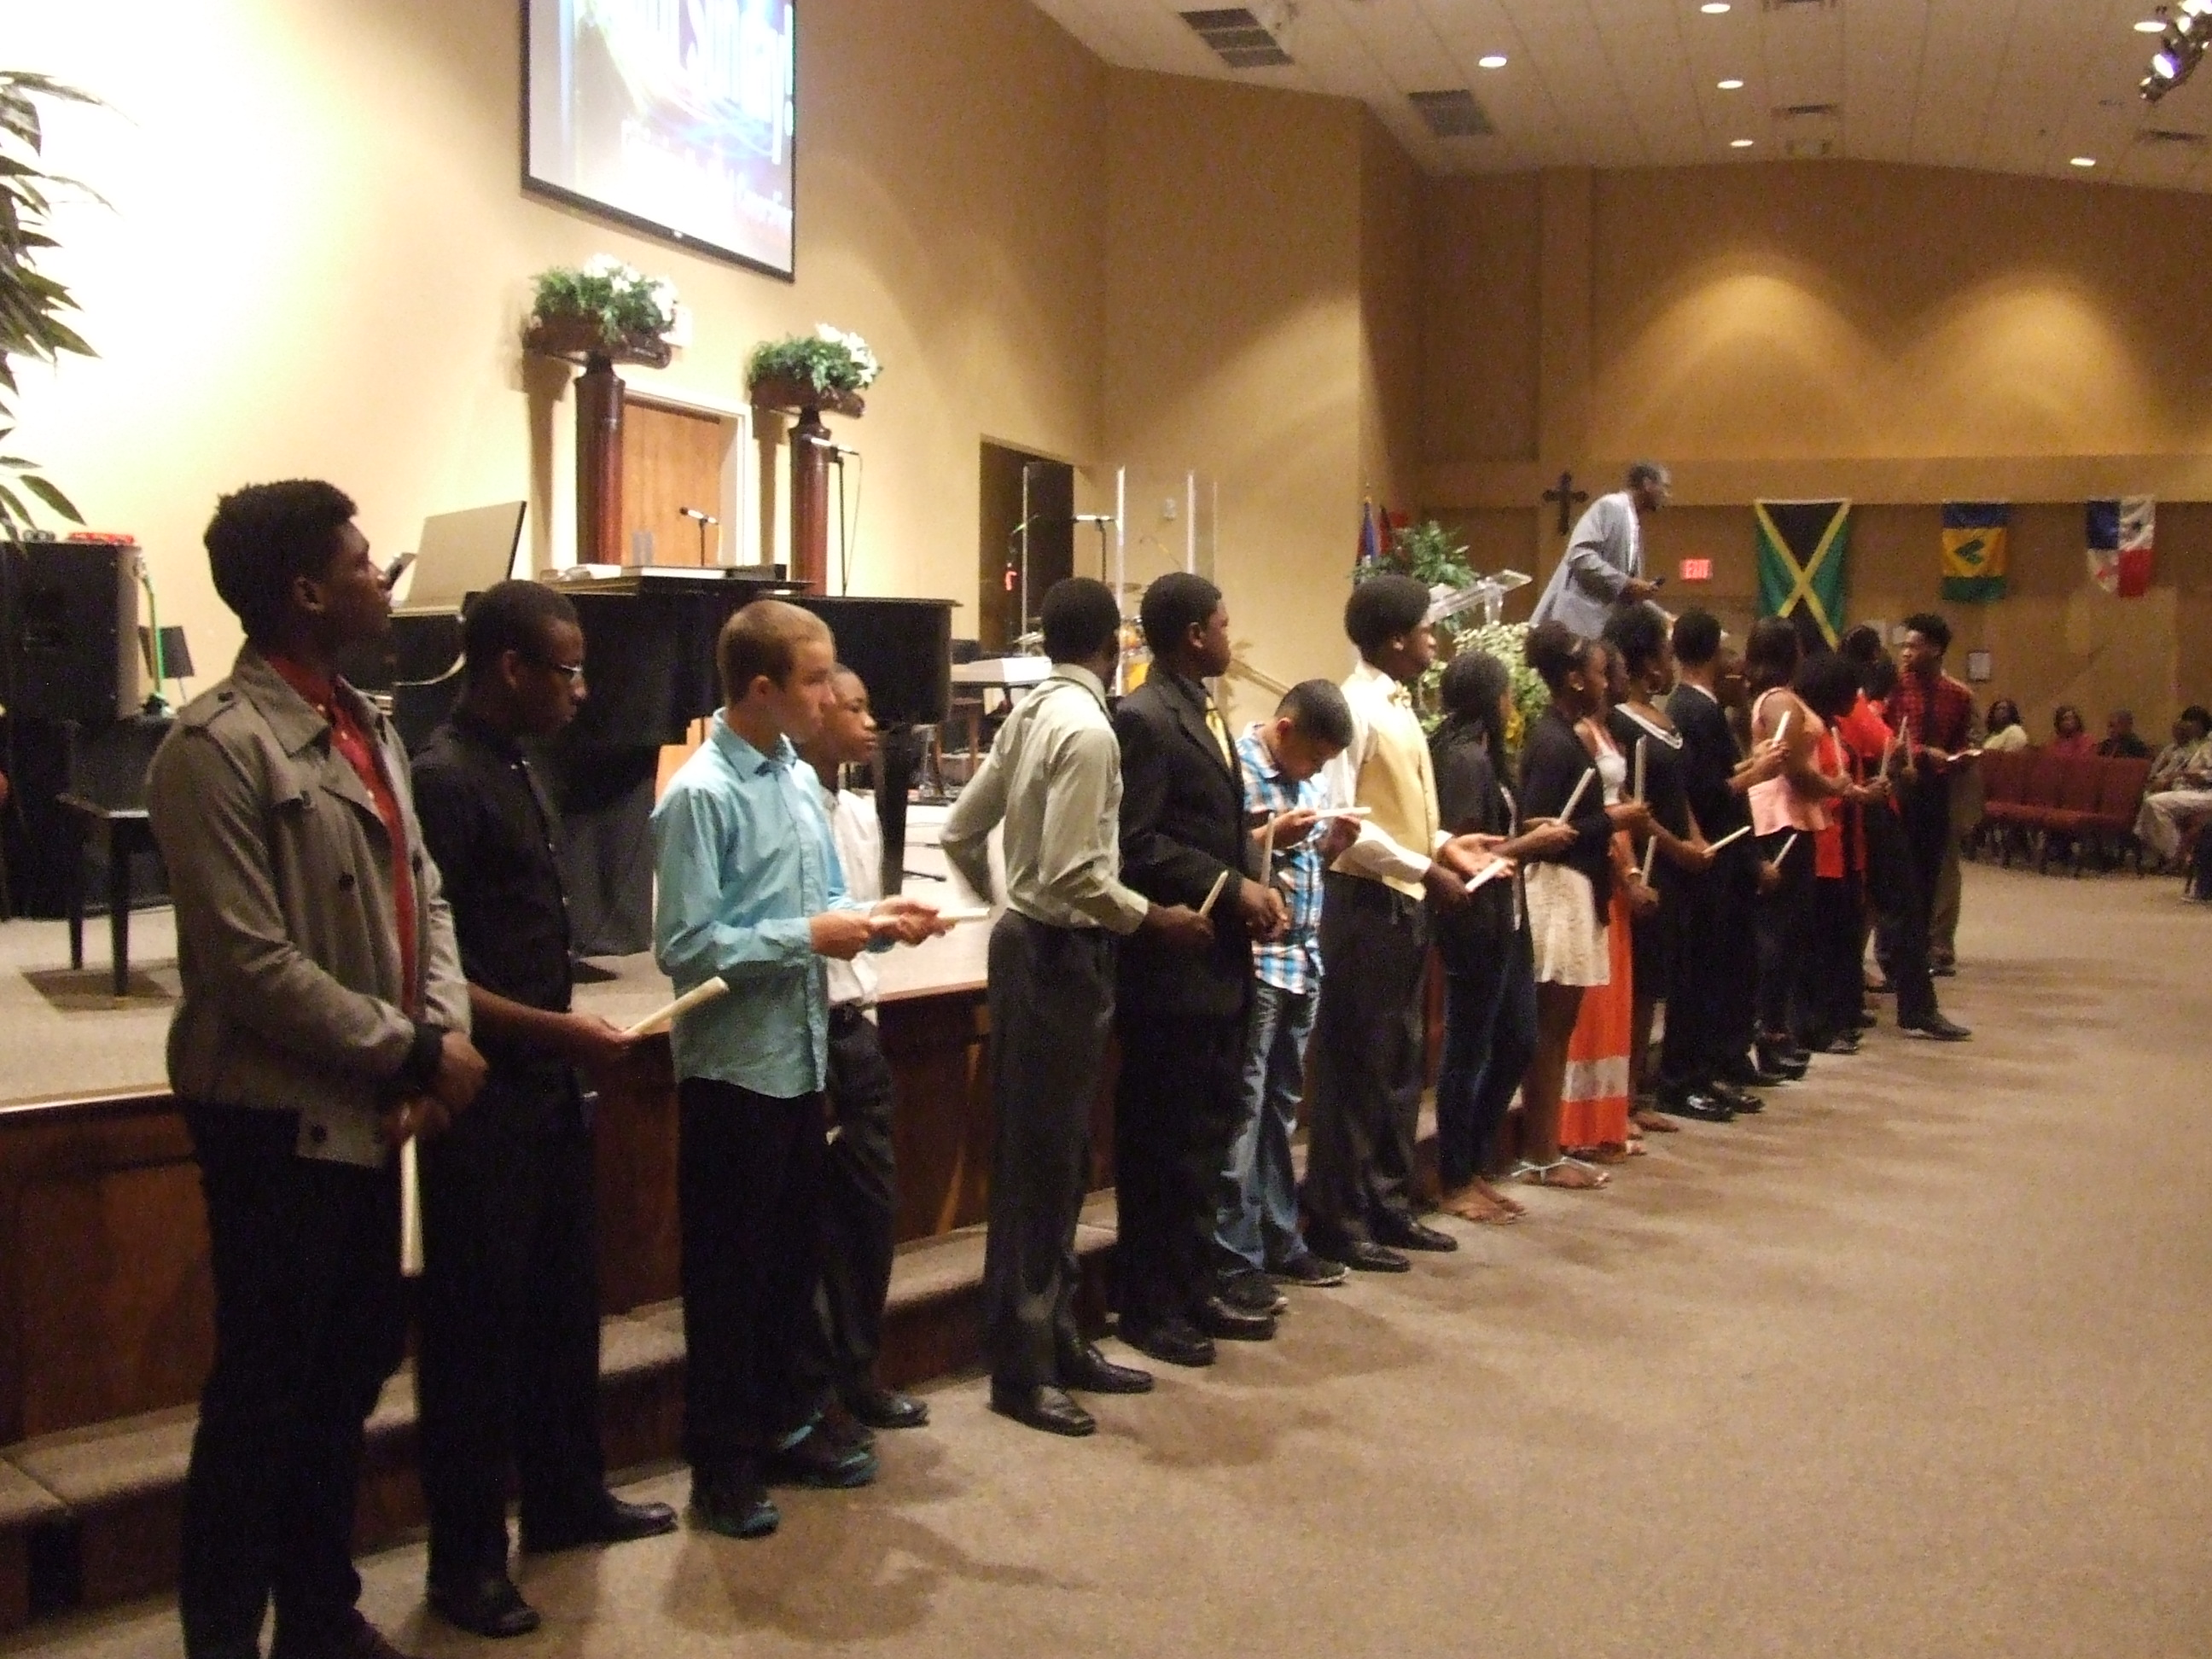 Teens receiving awards